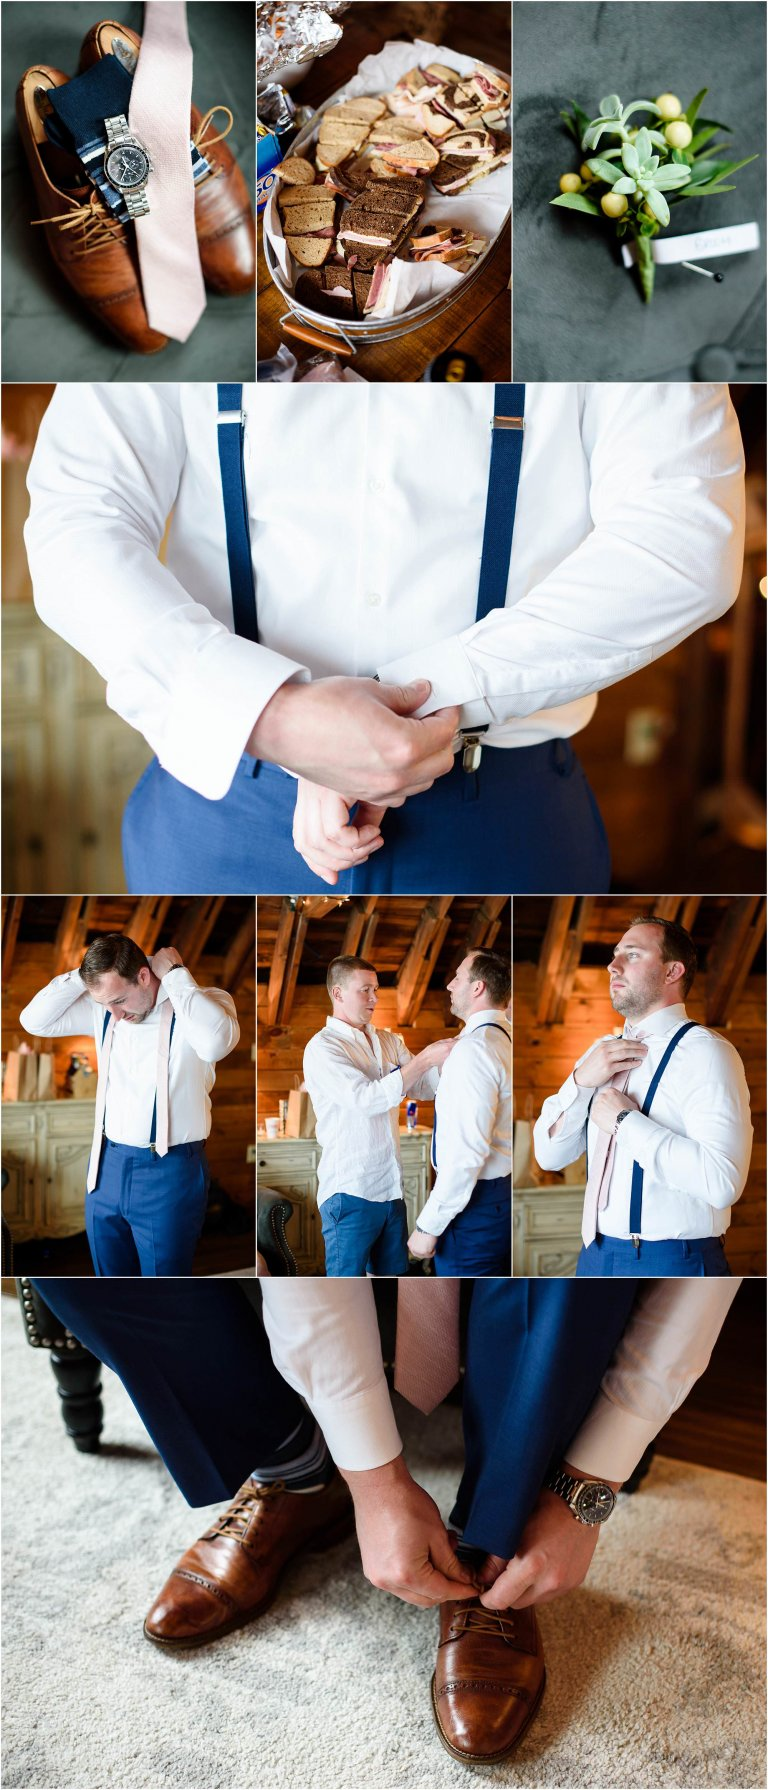 PA barn wedding venue photographer Crystal Satriano photographed the groom getting ready with the help of a groomsman